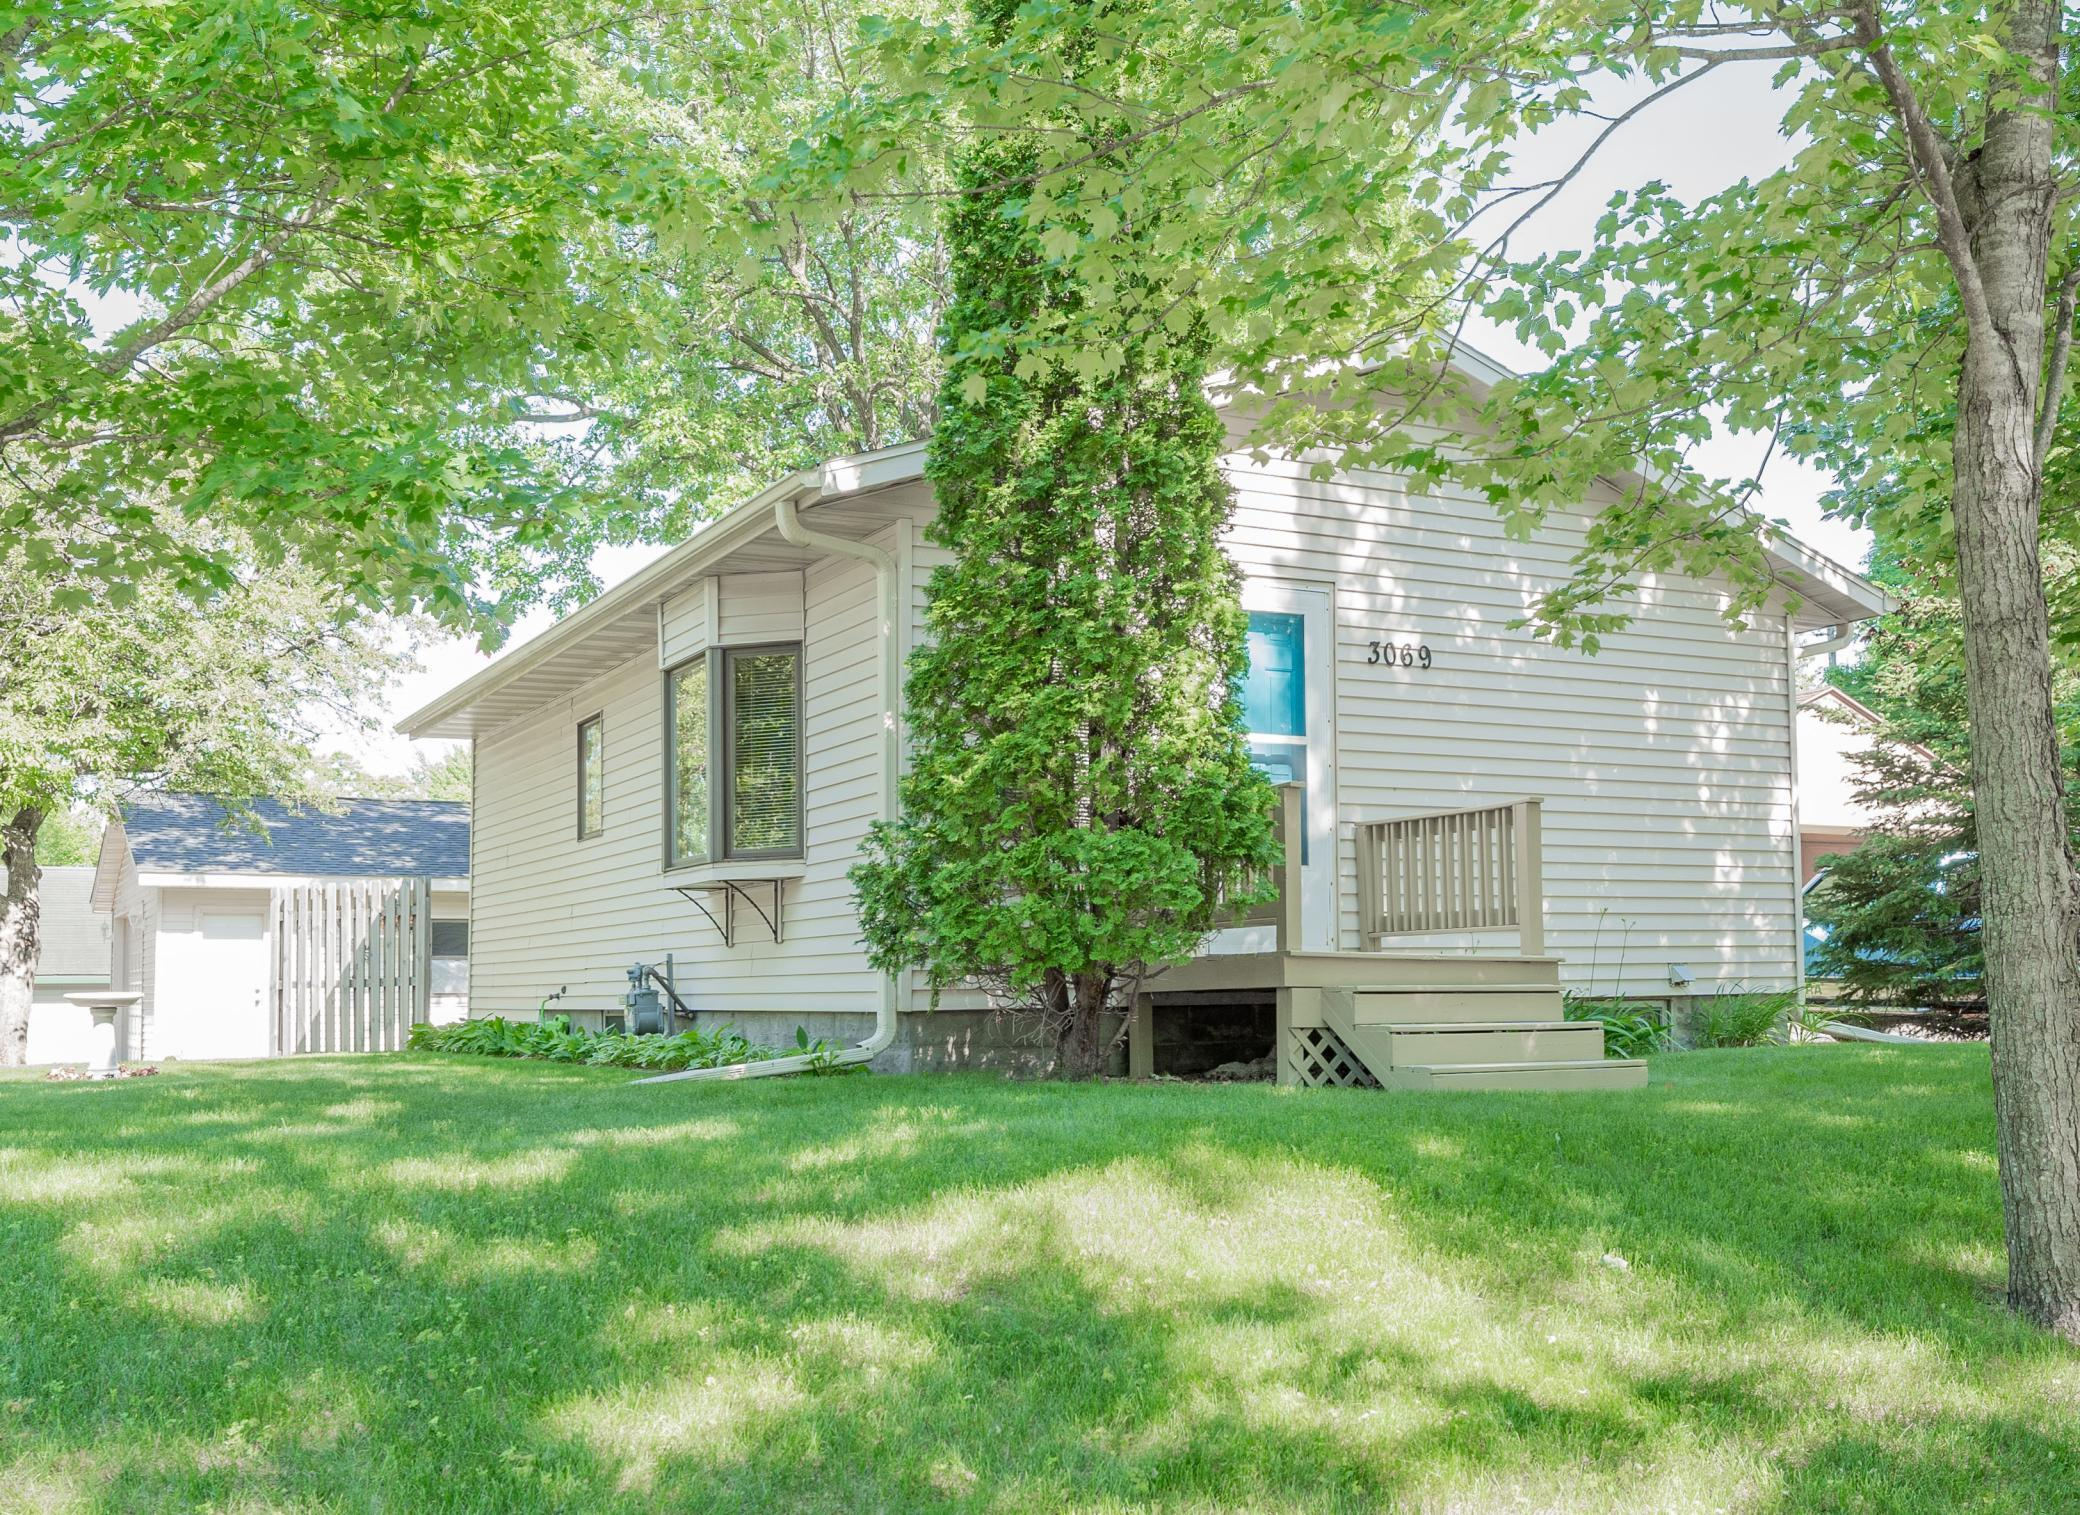 3069 Mars Property Photo - Eau Claire, WI real estate listing